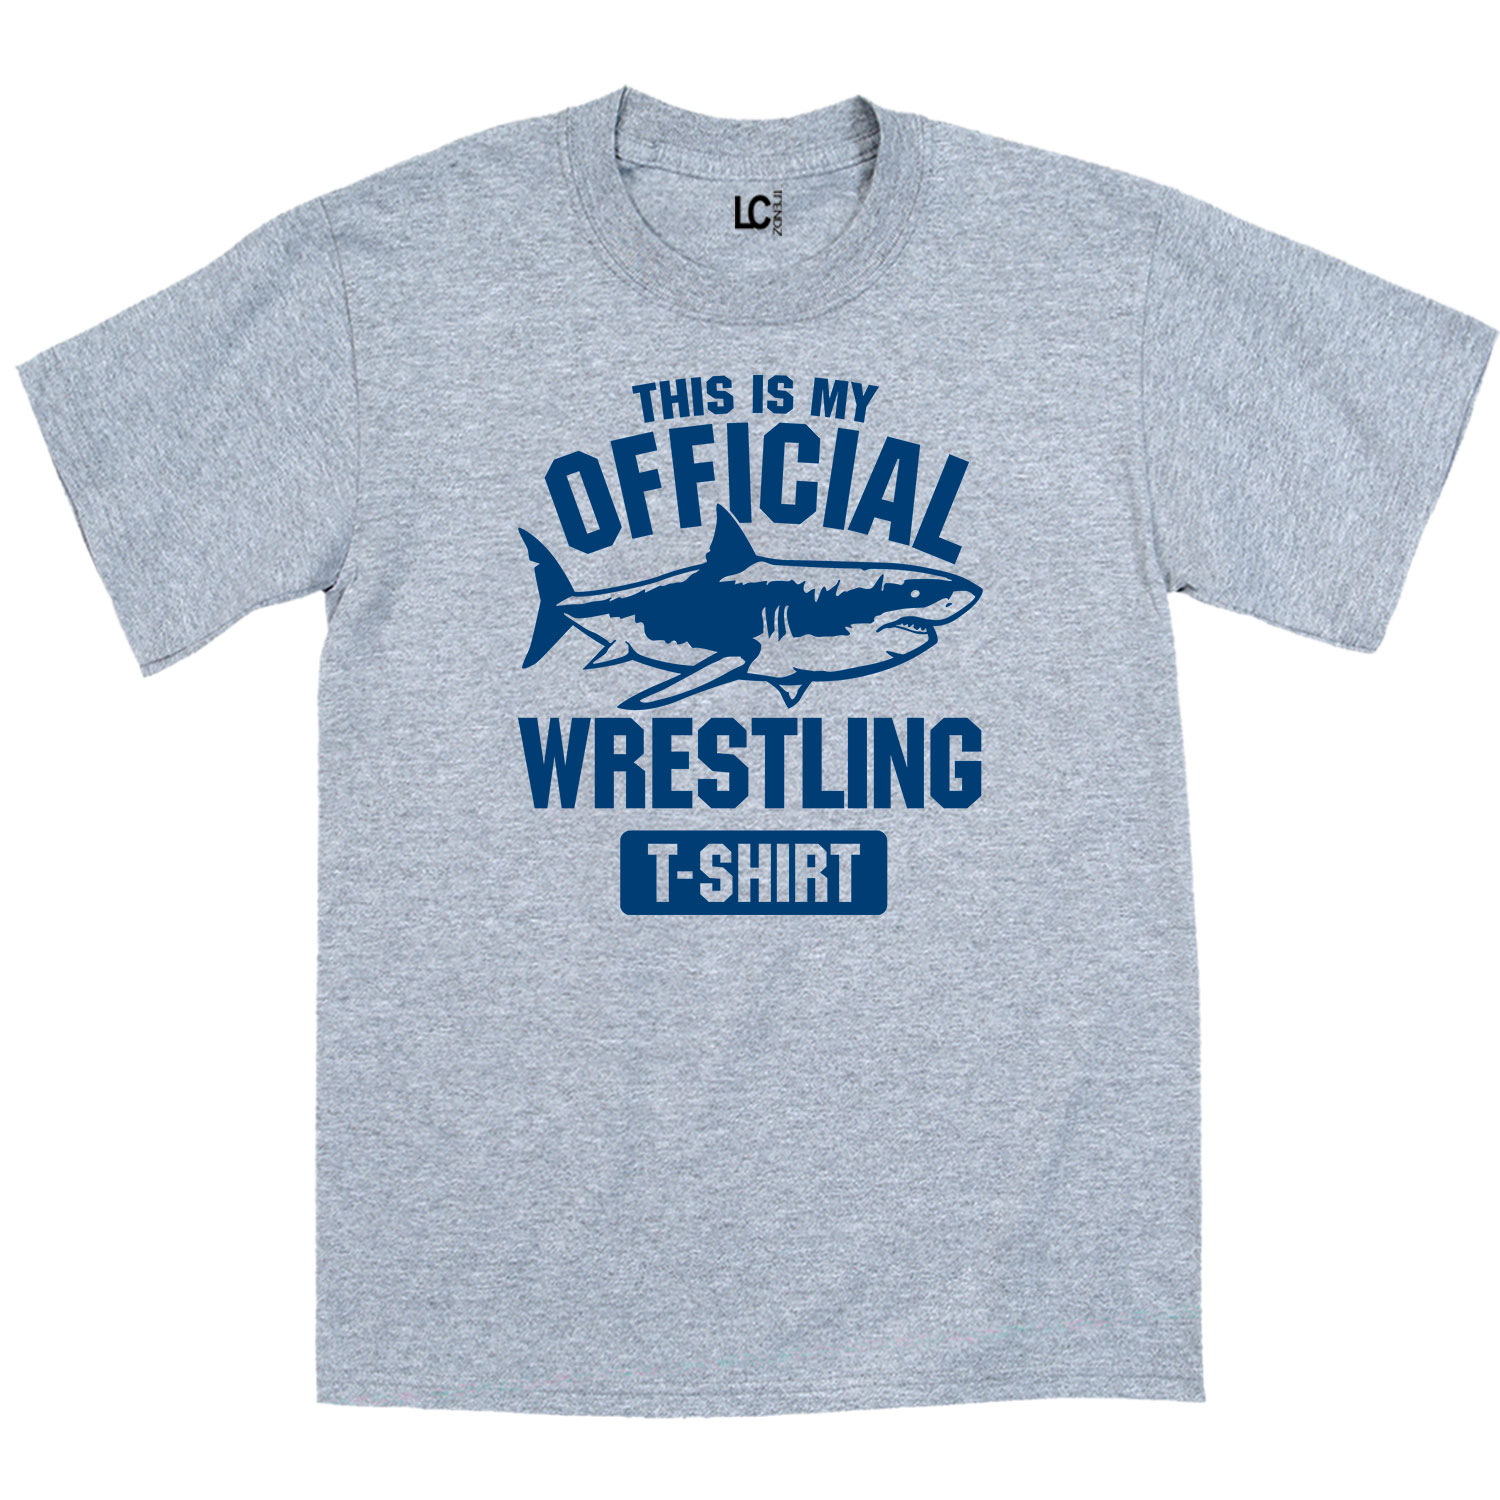 This Is My Official Wrestling Shirt Shark Athletic Sports Novelty - Mens T-Shirt